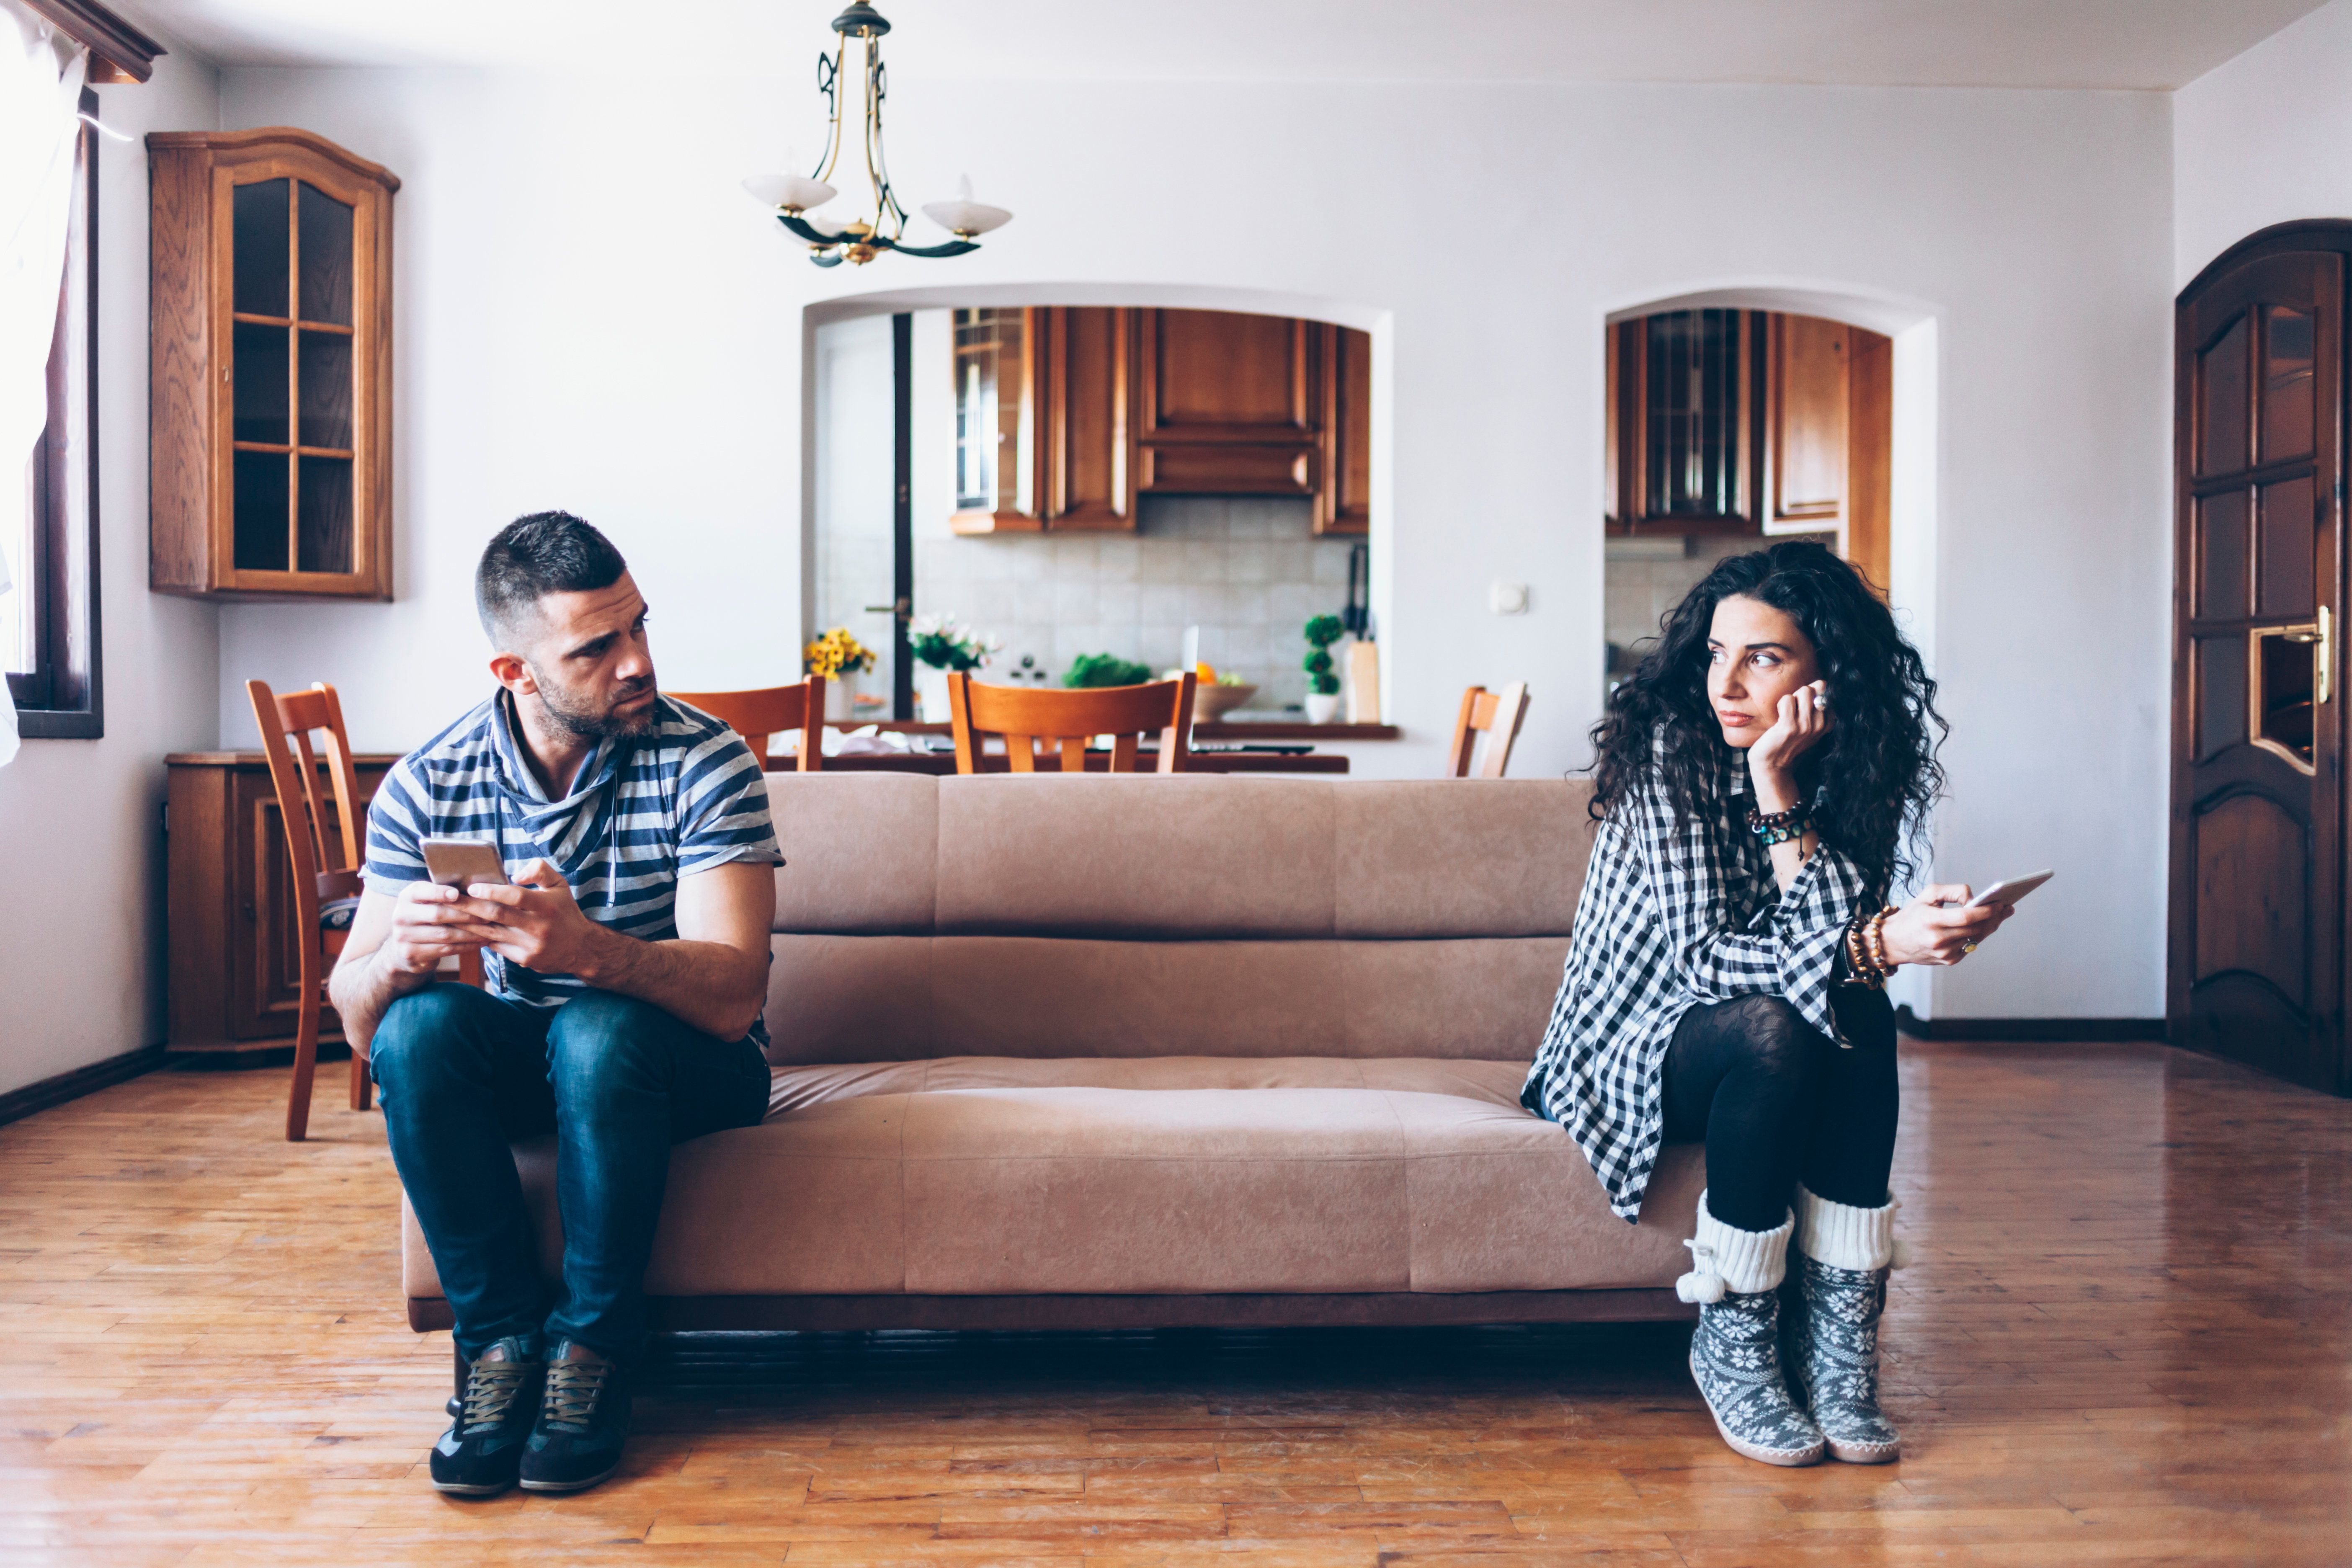 Couple in conflict sitting on sofa at home, using smart phones.